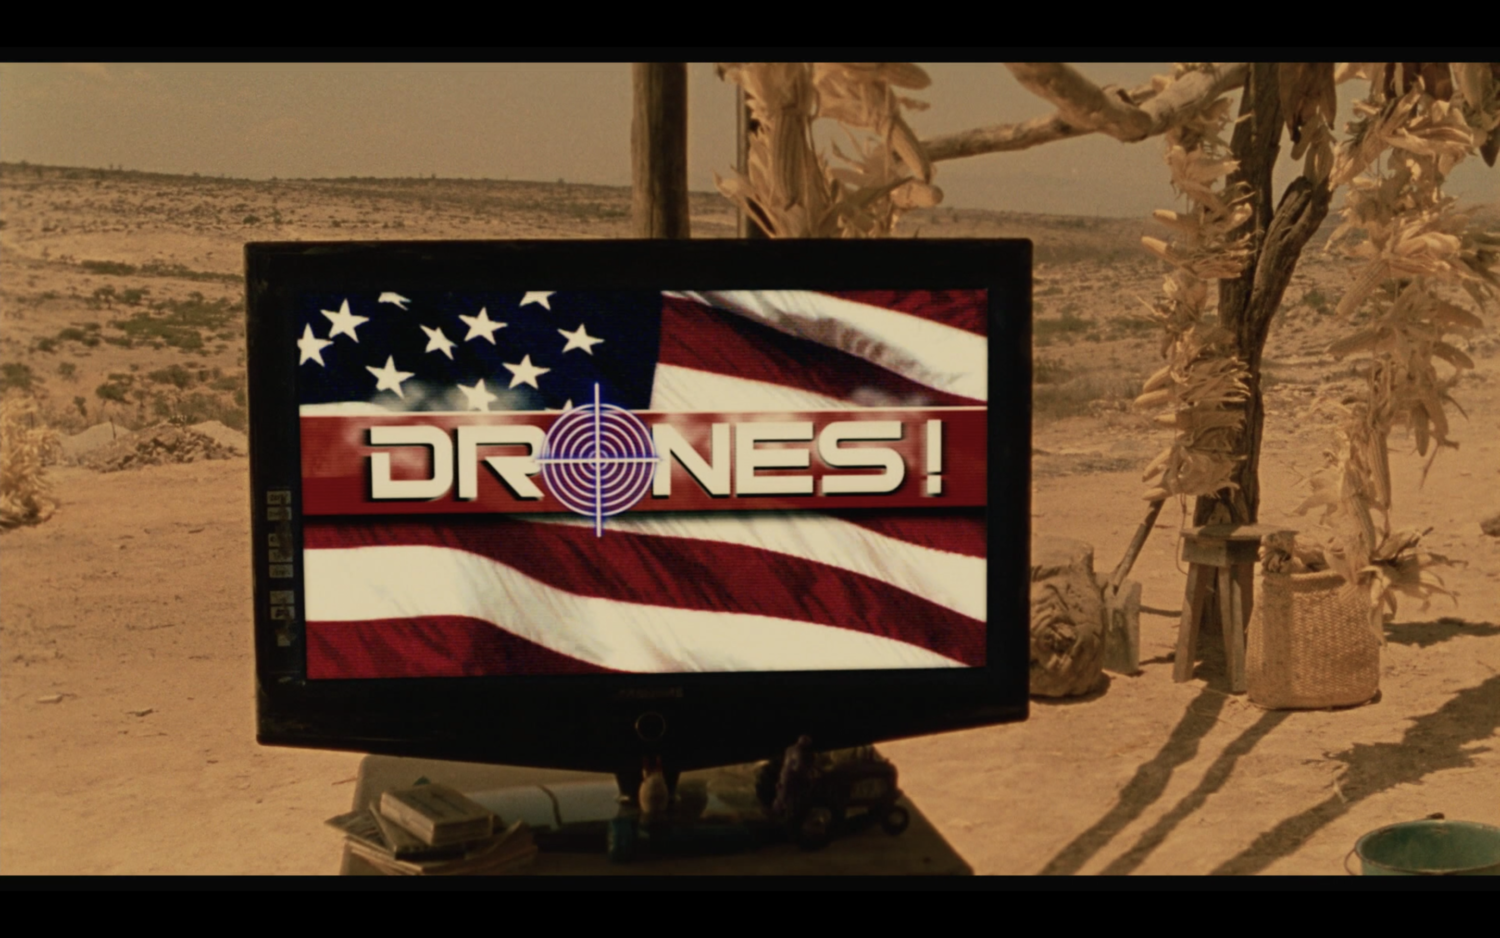 Figure 3. Memo's hermano watches Drones! on this television. Screenshot by the author.